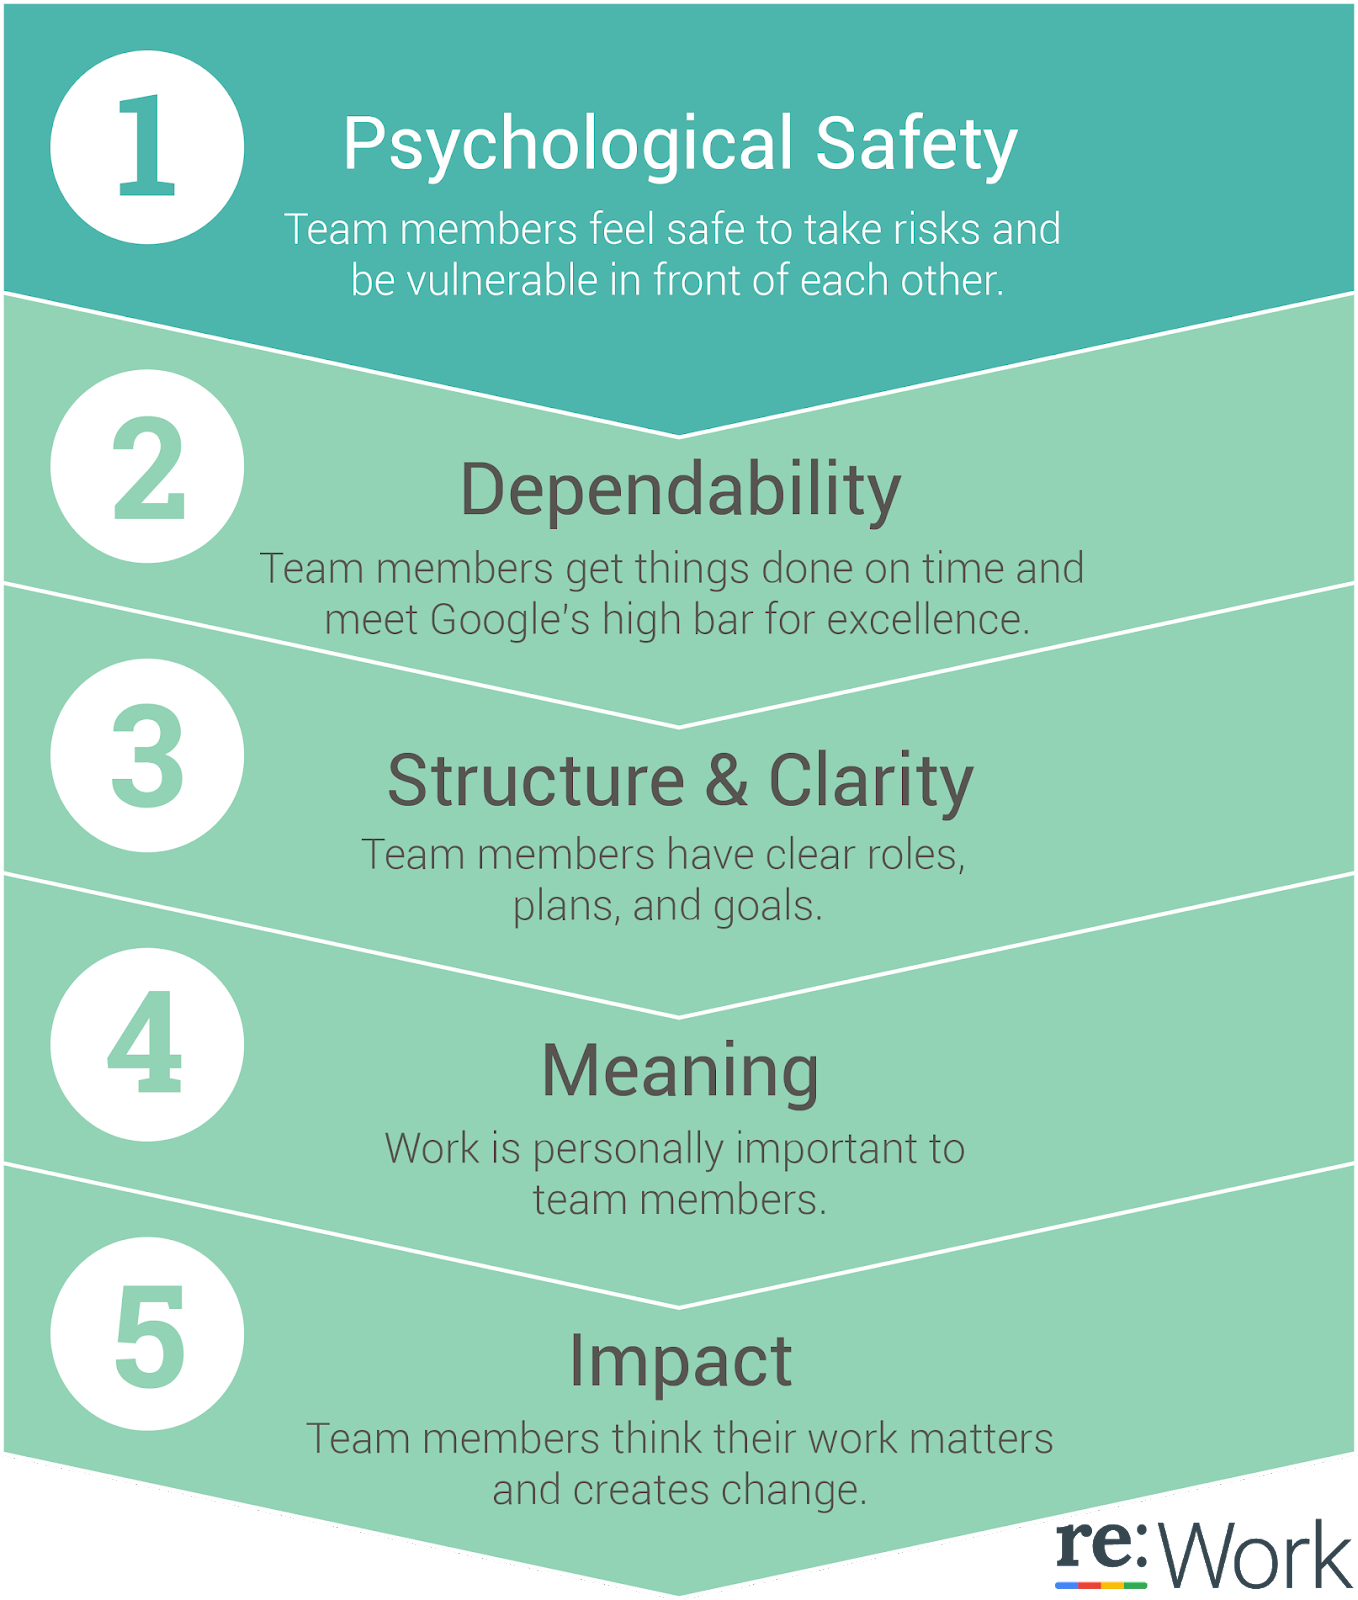 psychological safety and team performance